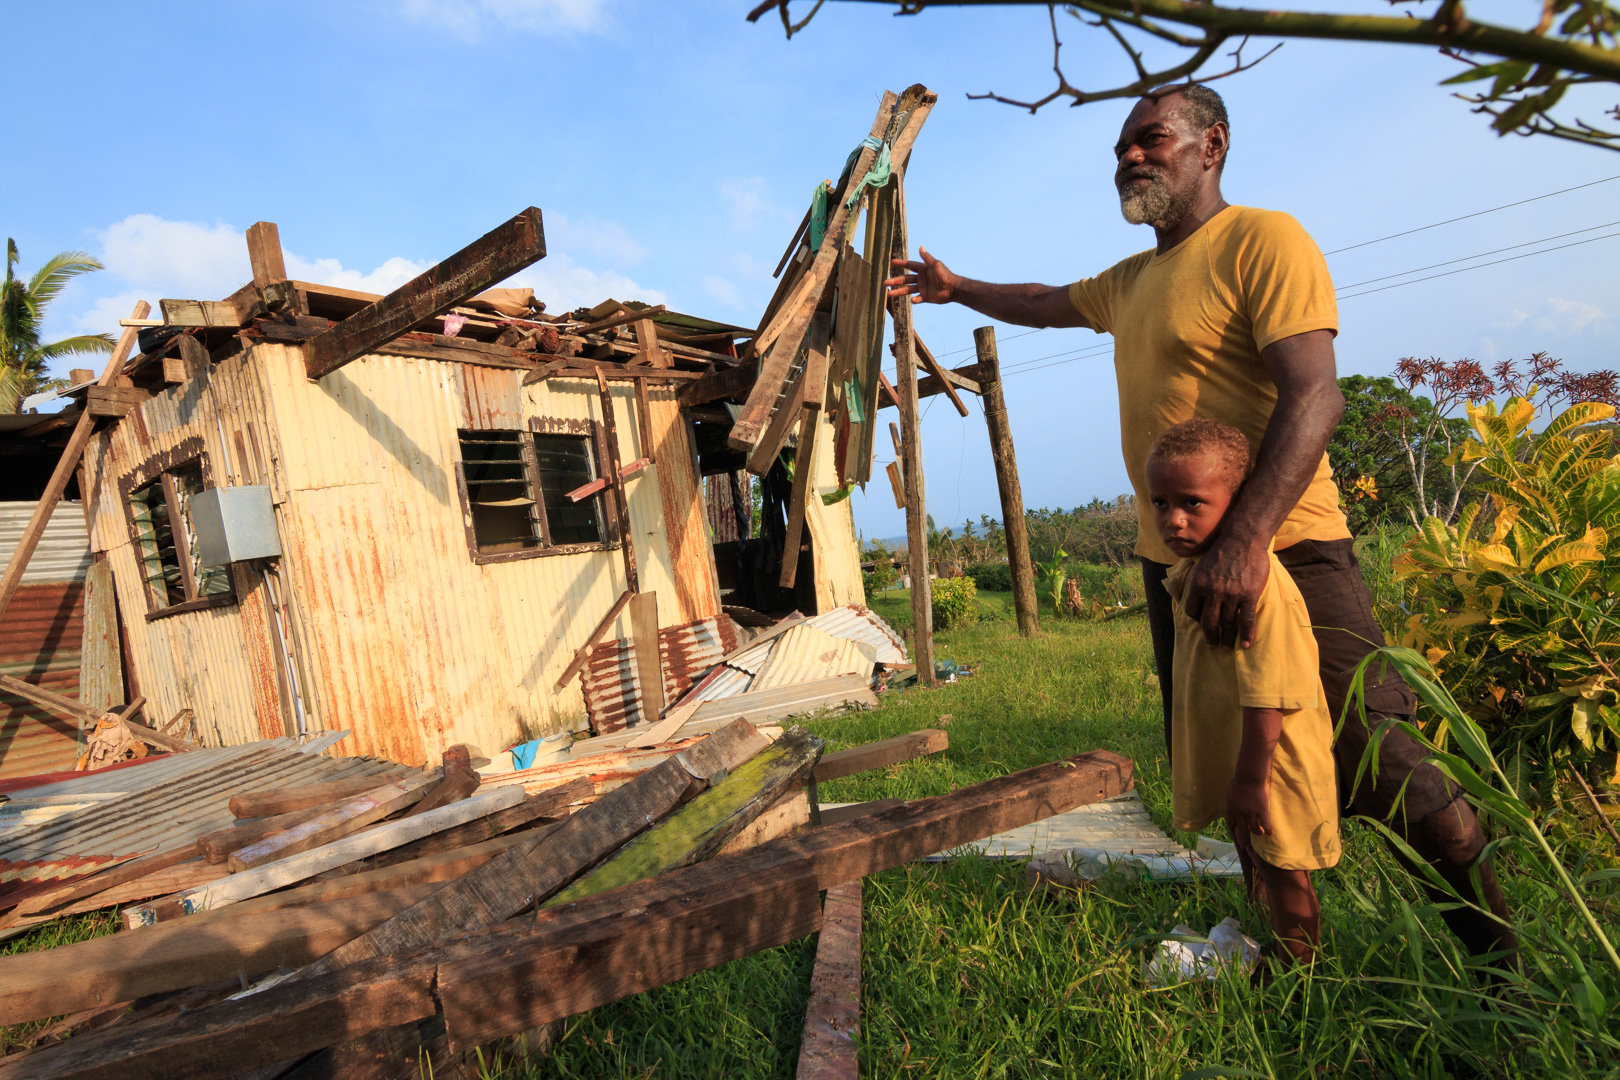 Ikavatu from the village of Namena in Tailevu, Fiji, gestures towards his damaged house after Cyclone Winston swept through the area on February 20, 2016.